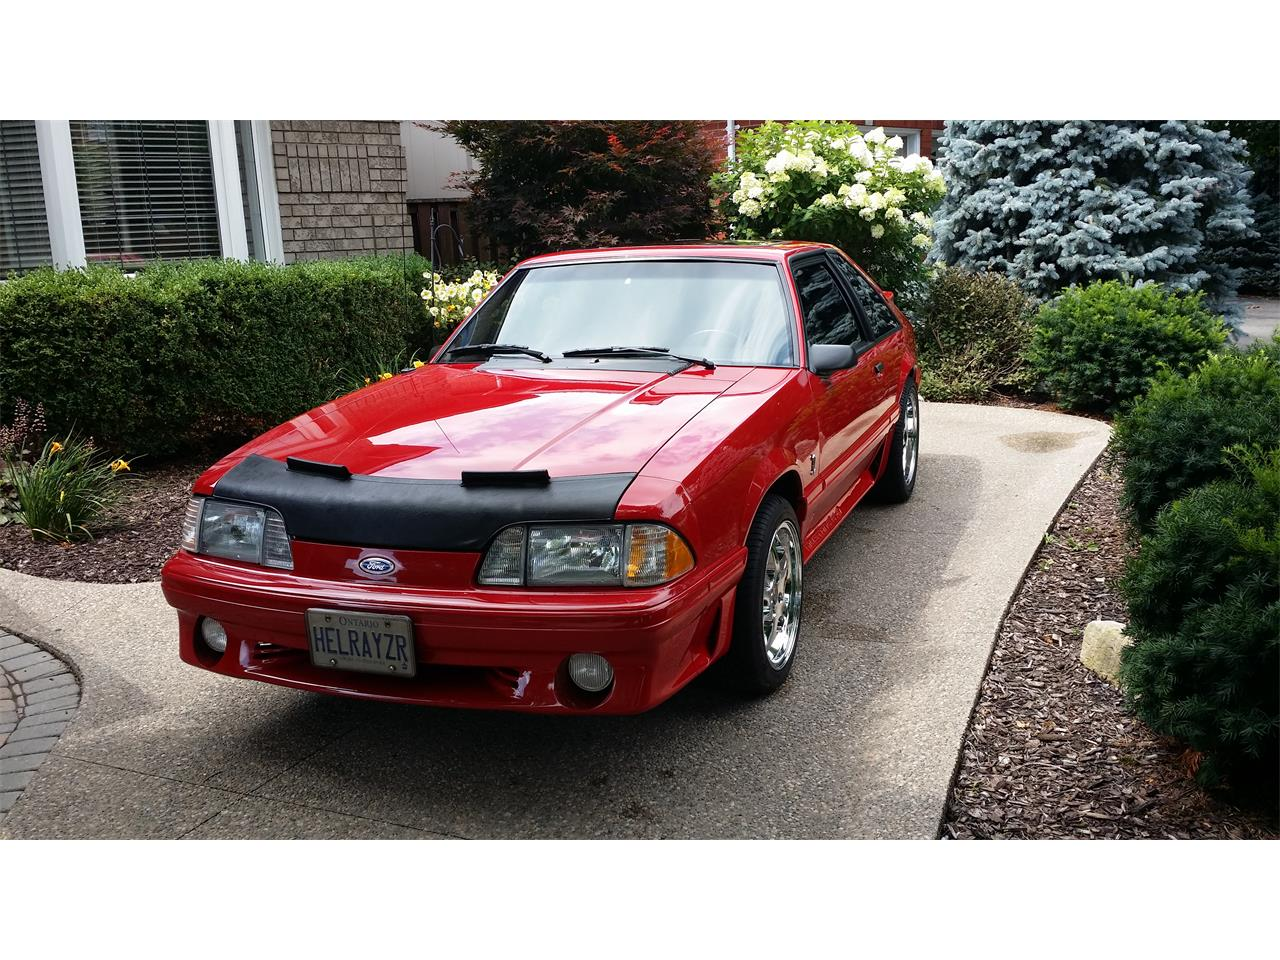 Large Picture of 1987 Ford Mustang Cobra - $15,000.00 Offered by a Private Seller - PSFC